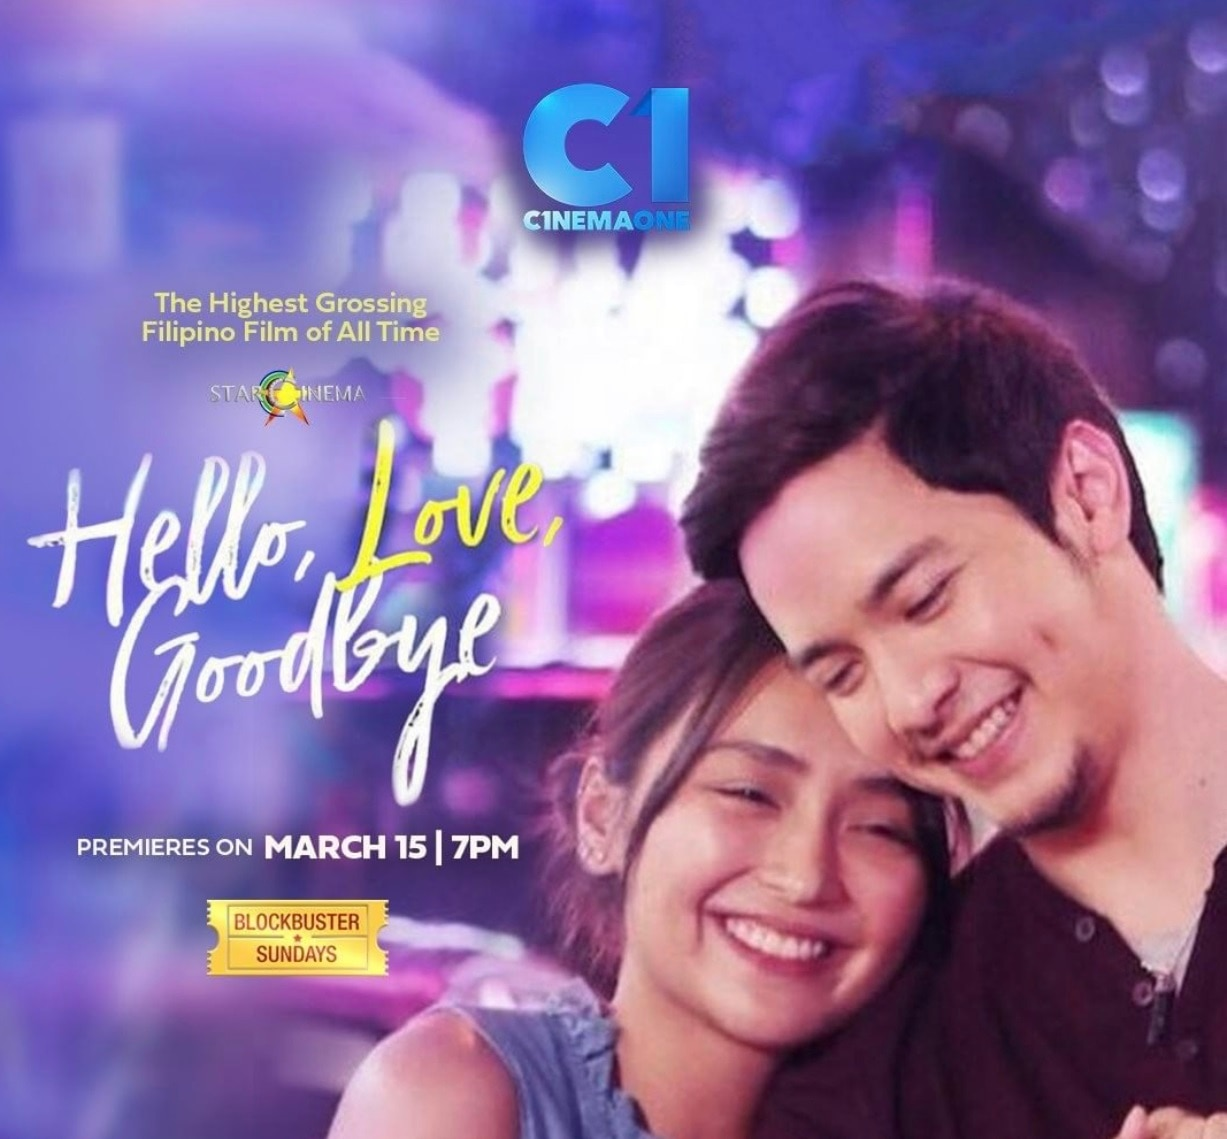 Hello Love Goodbye premieres on Cinema One this Sunday, March 15